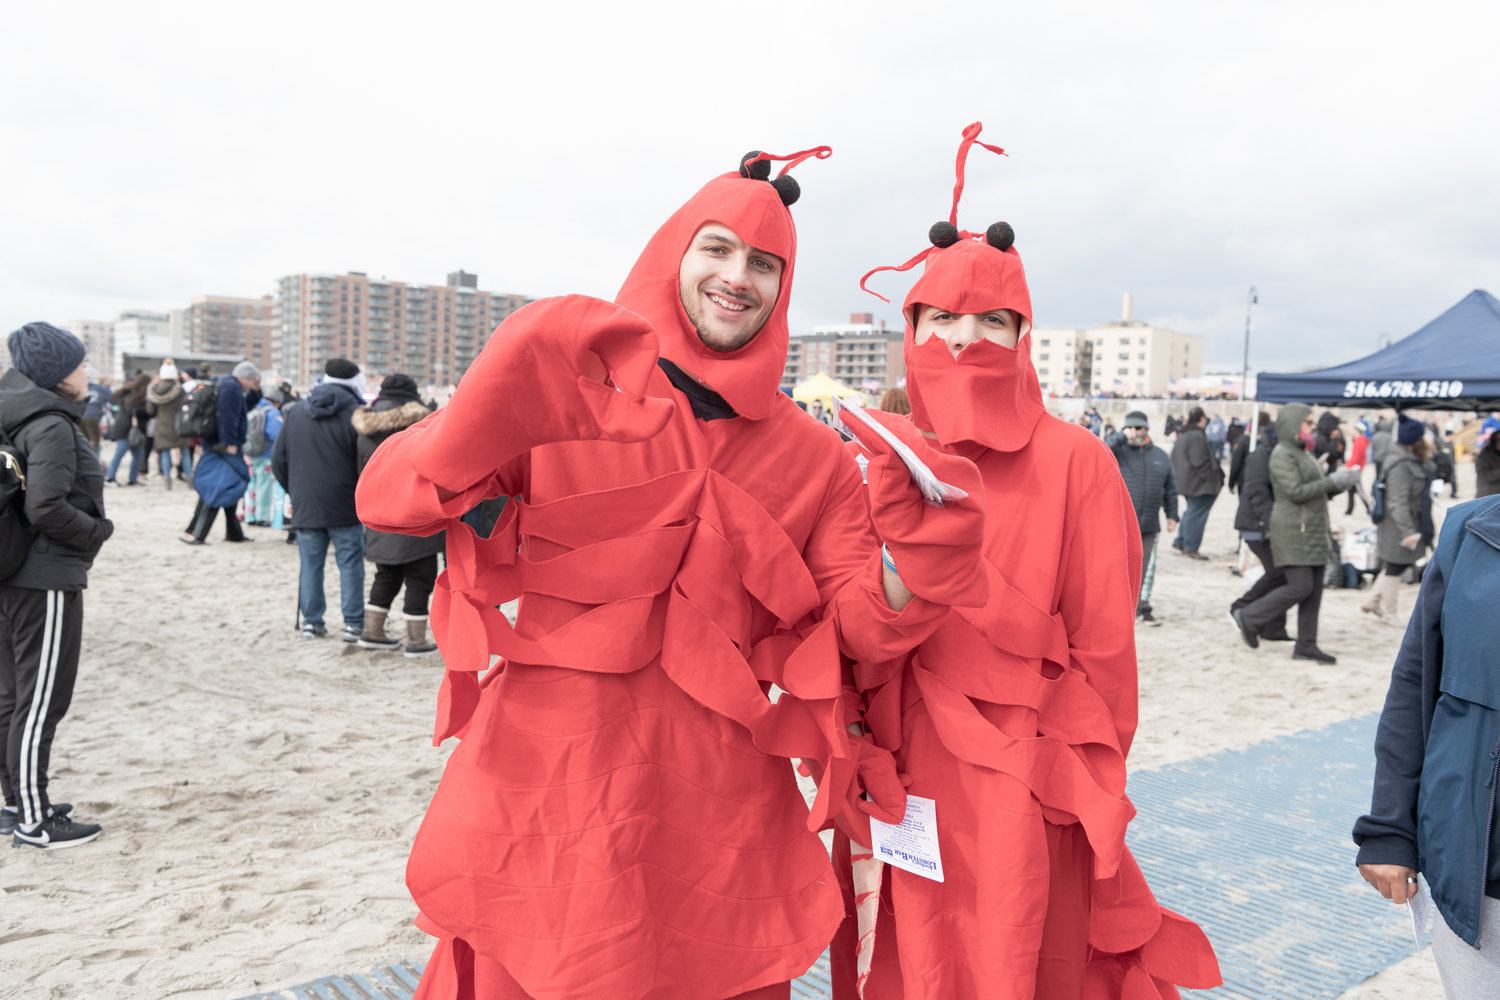 Lobsters were spotted on the beach.